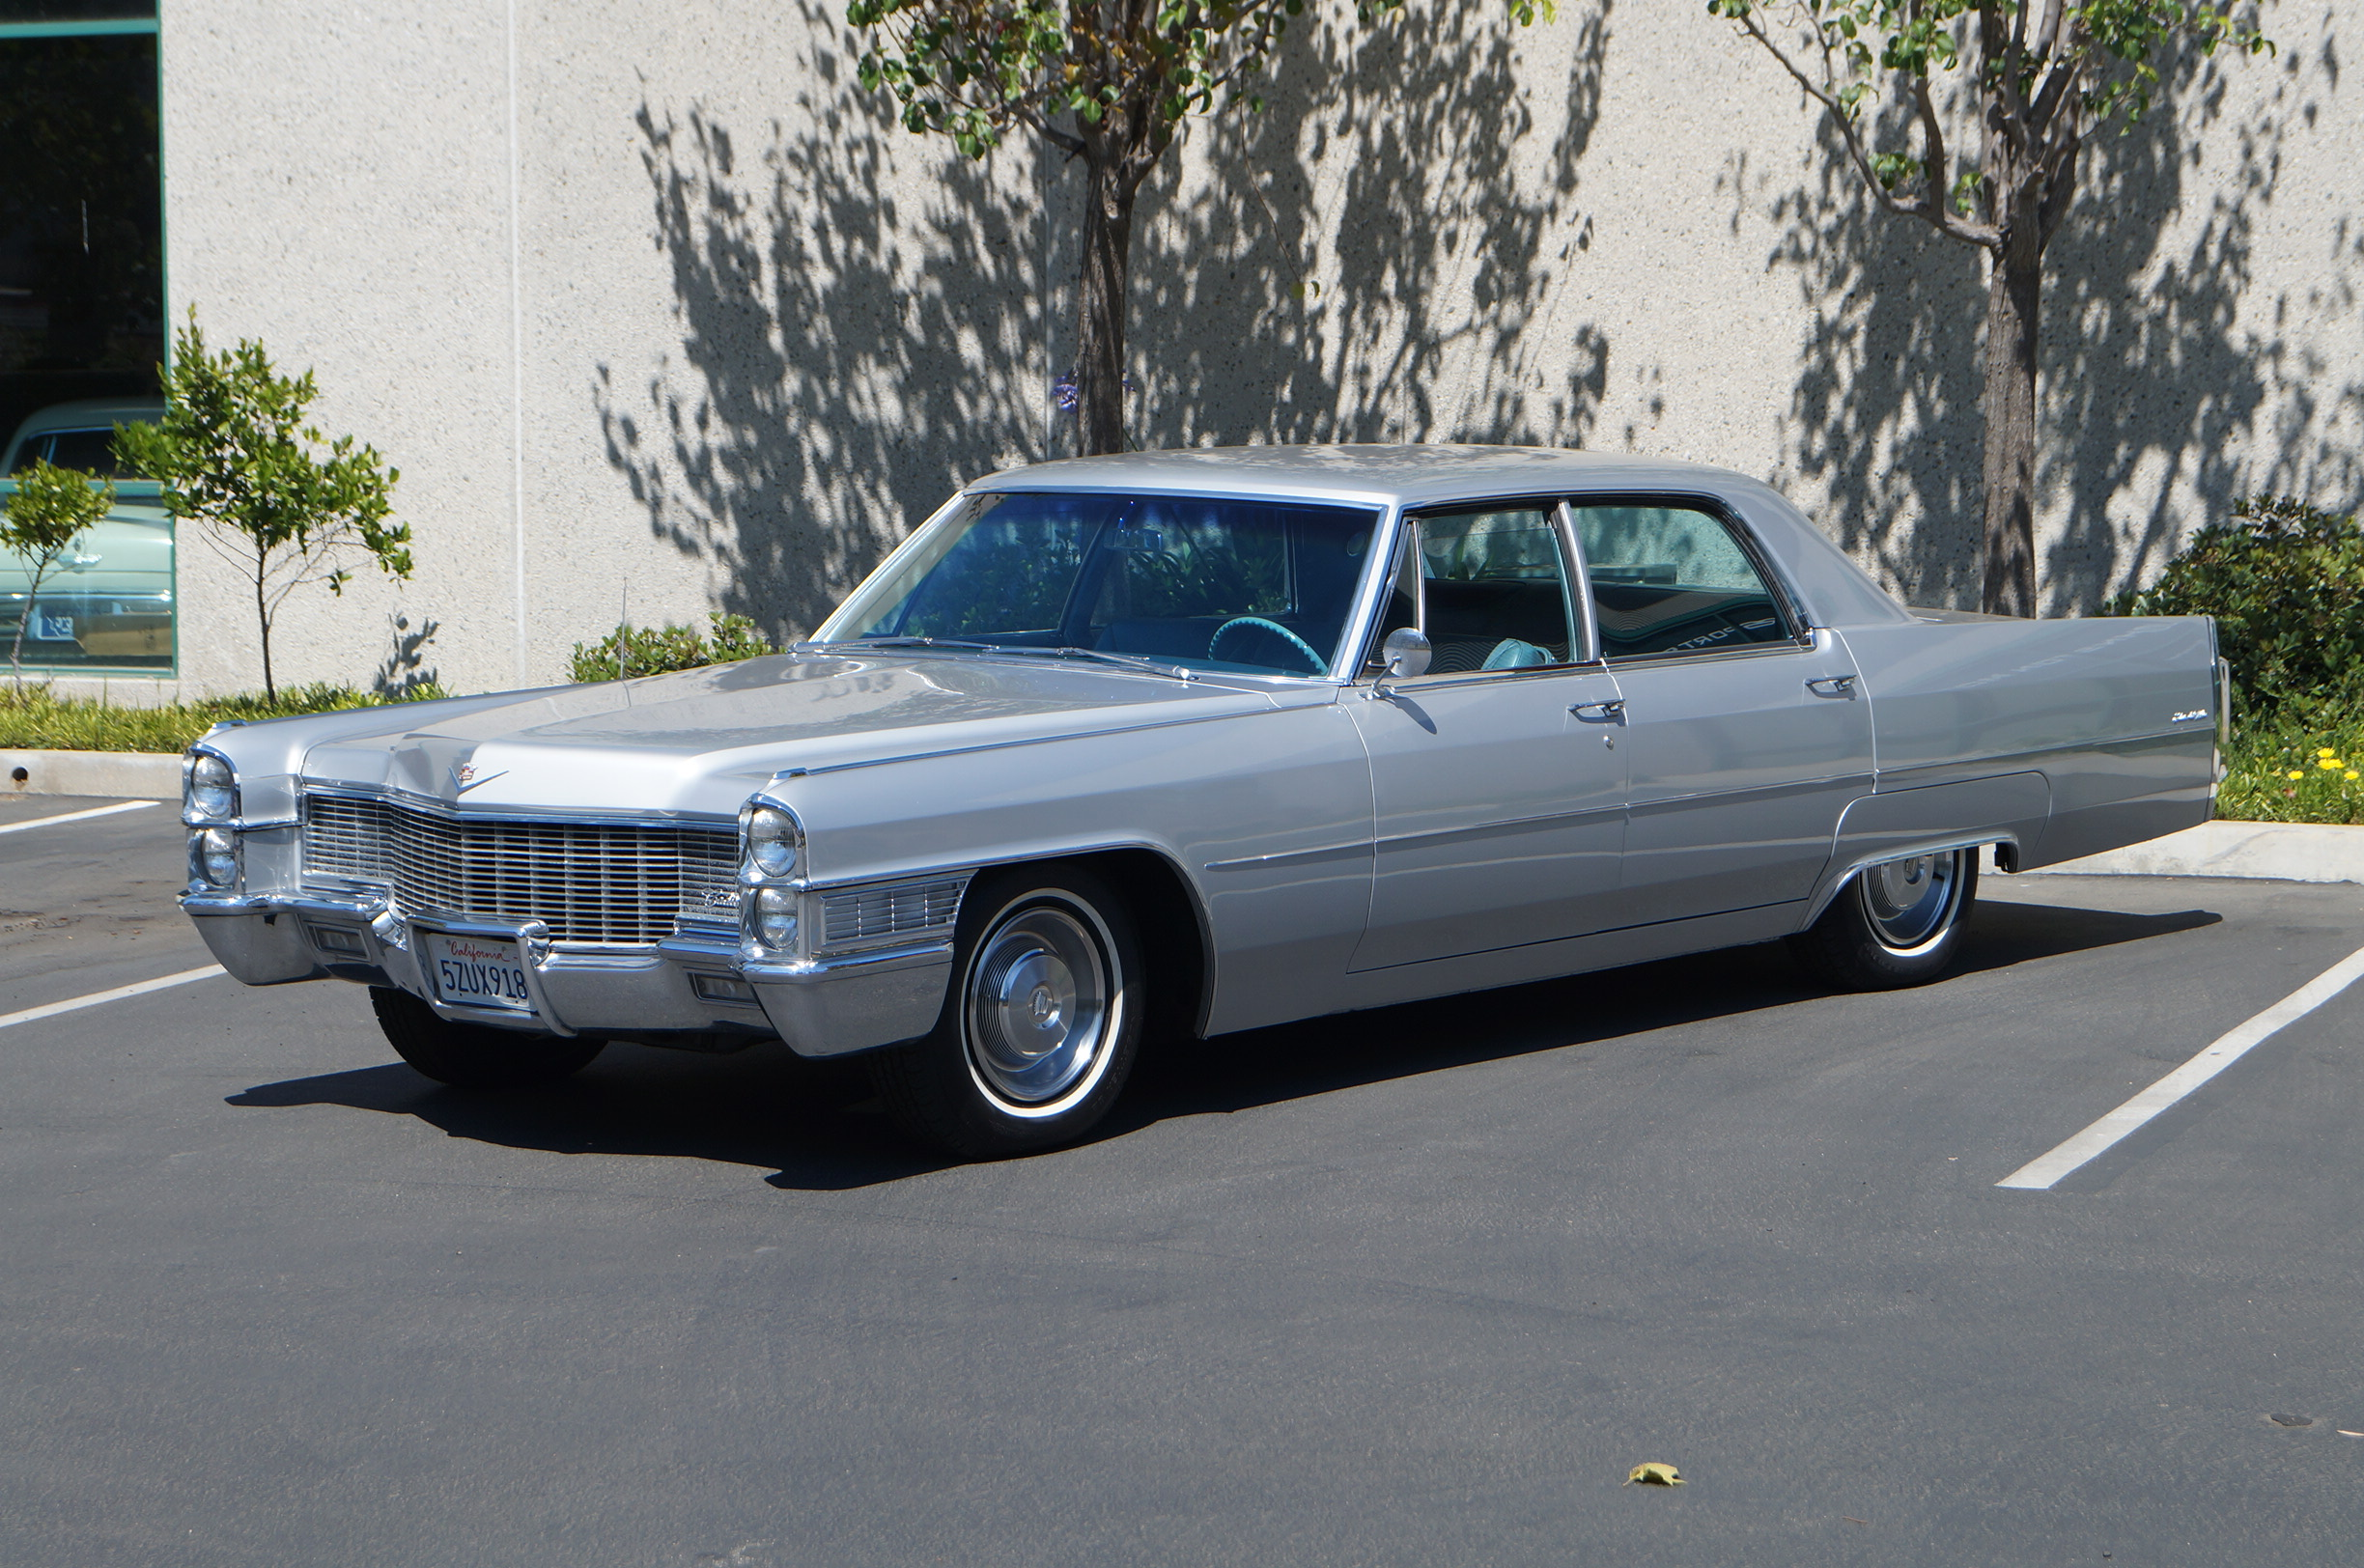 Gray 1965 Cadillac Sedan deVille - Sold at Johnston Motorsports